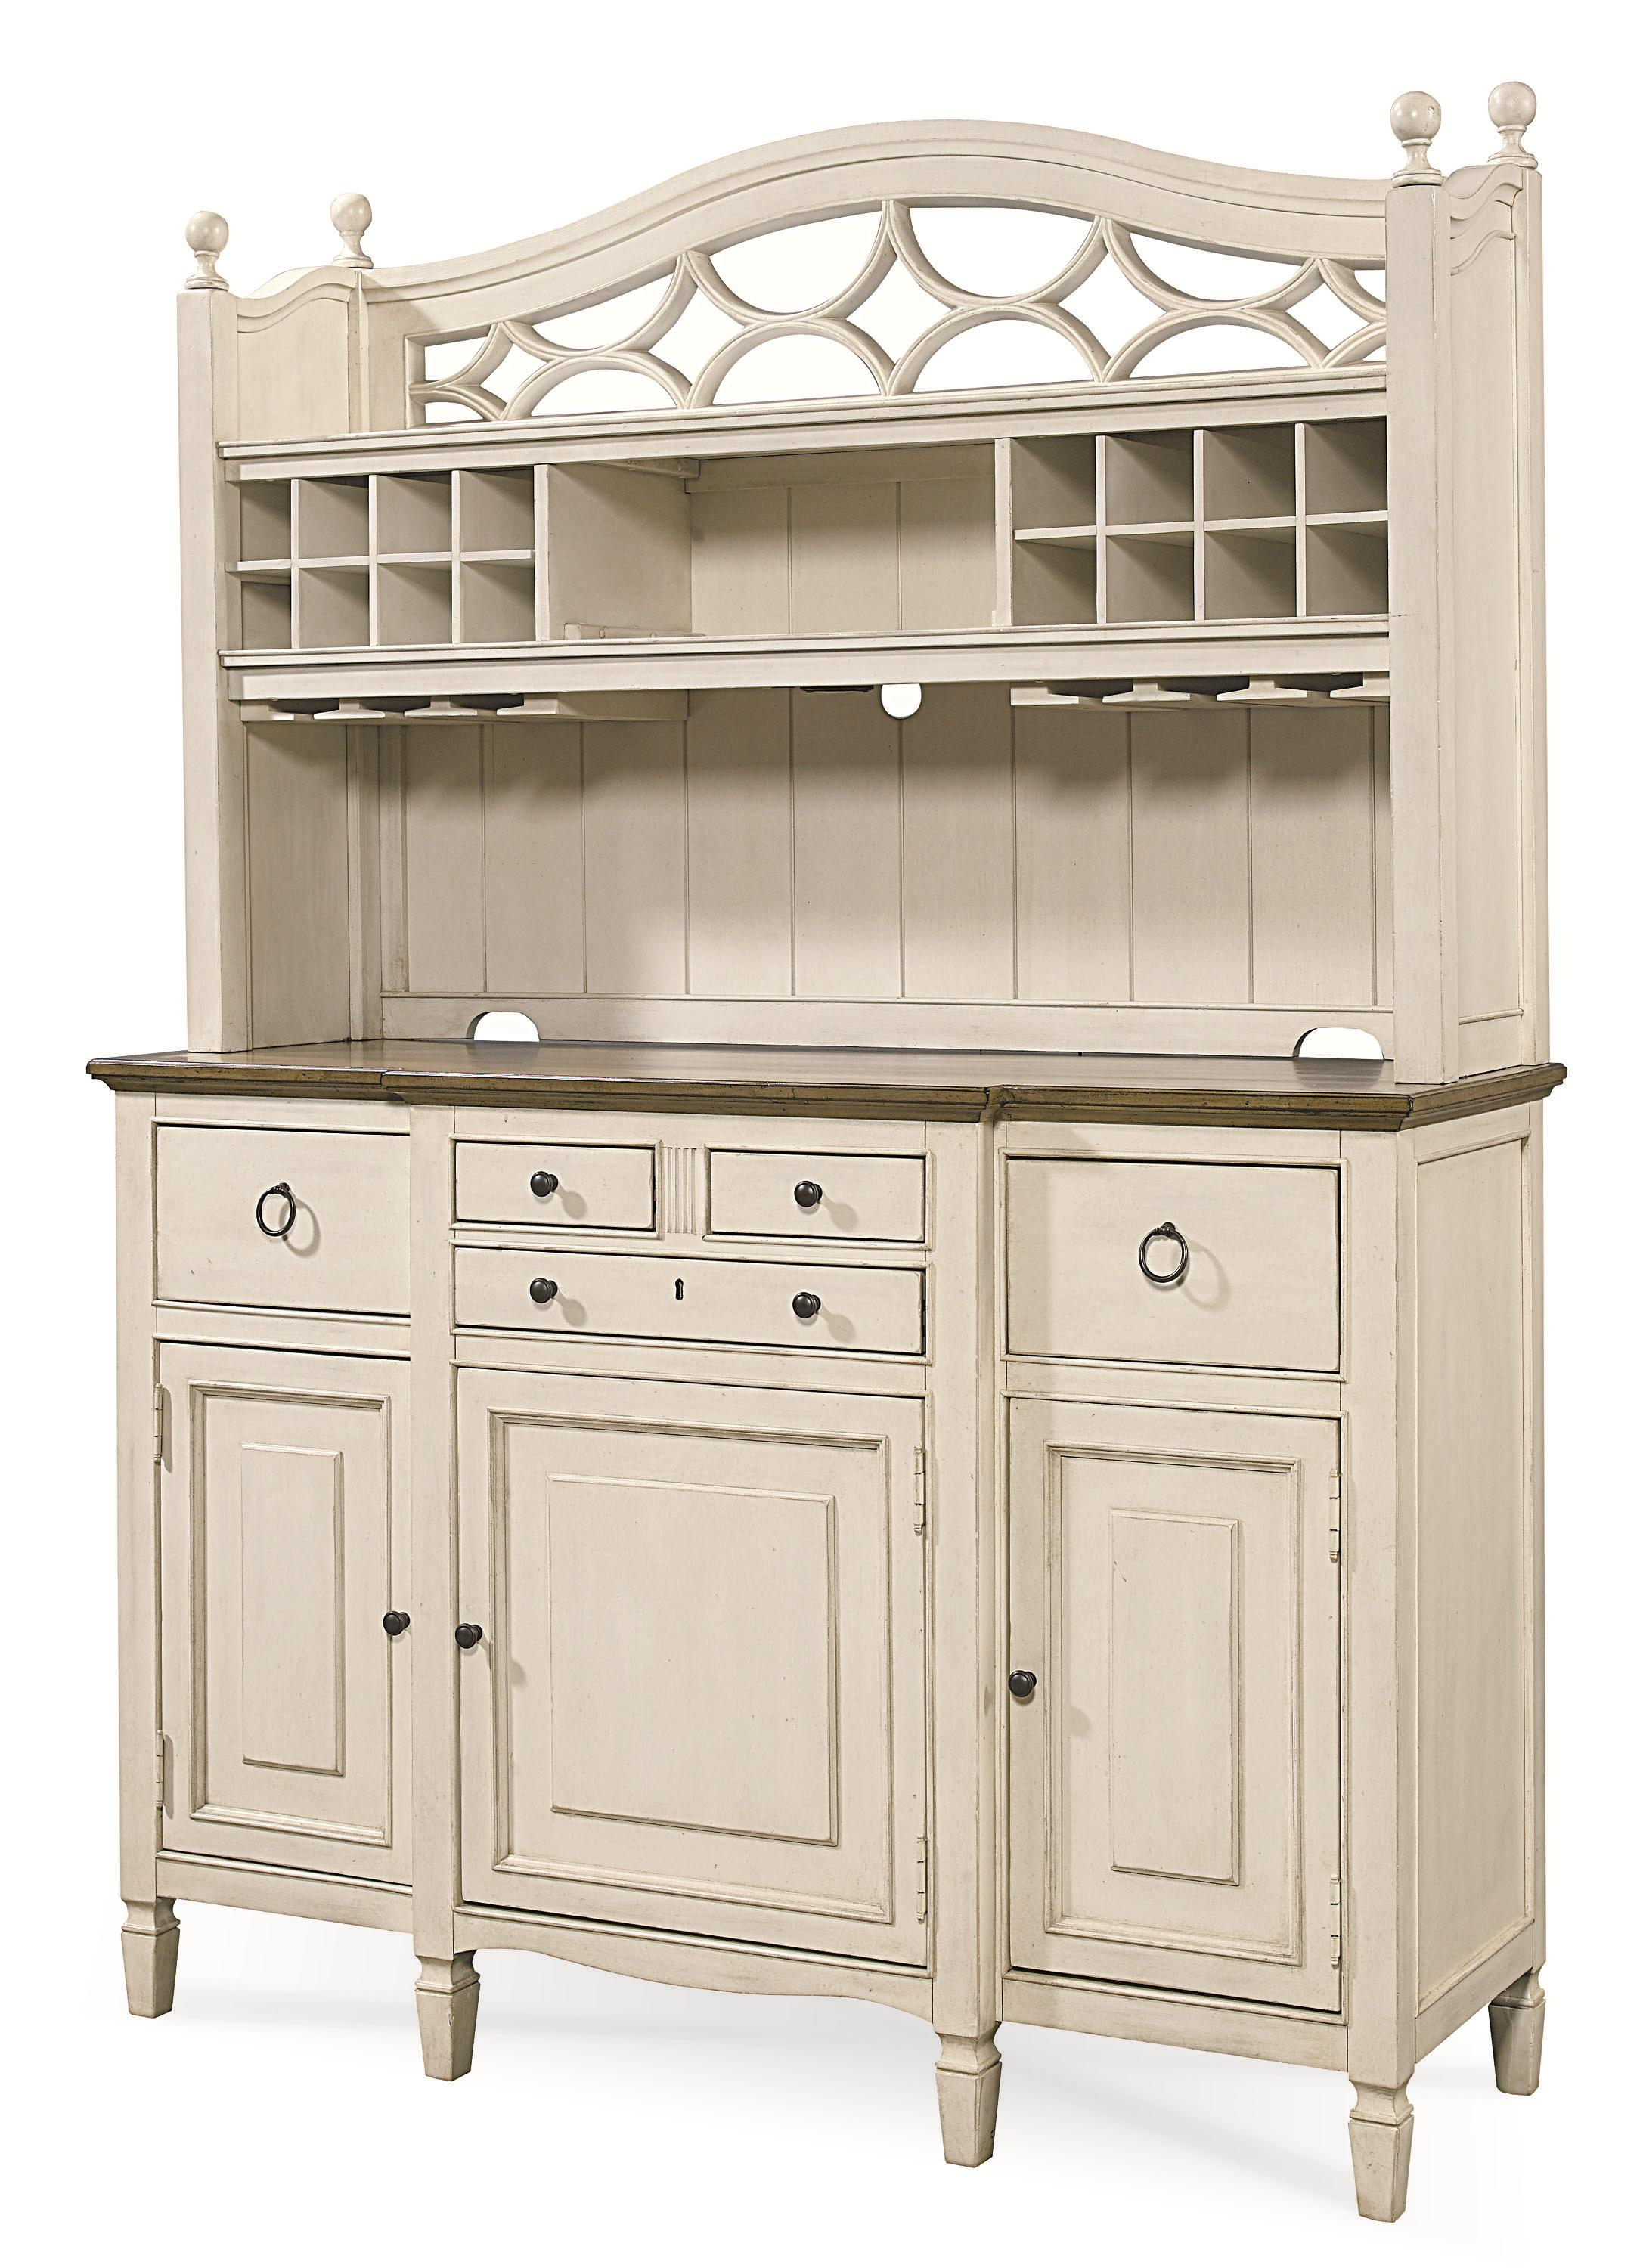 2 Pc Serving Buffet And Bar Hutch With Wine Storage By